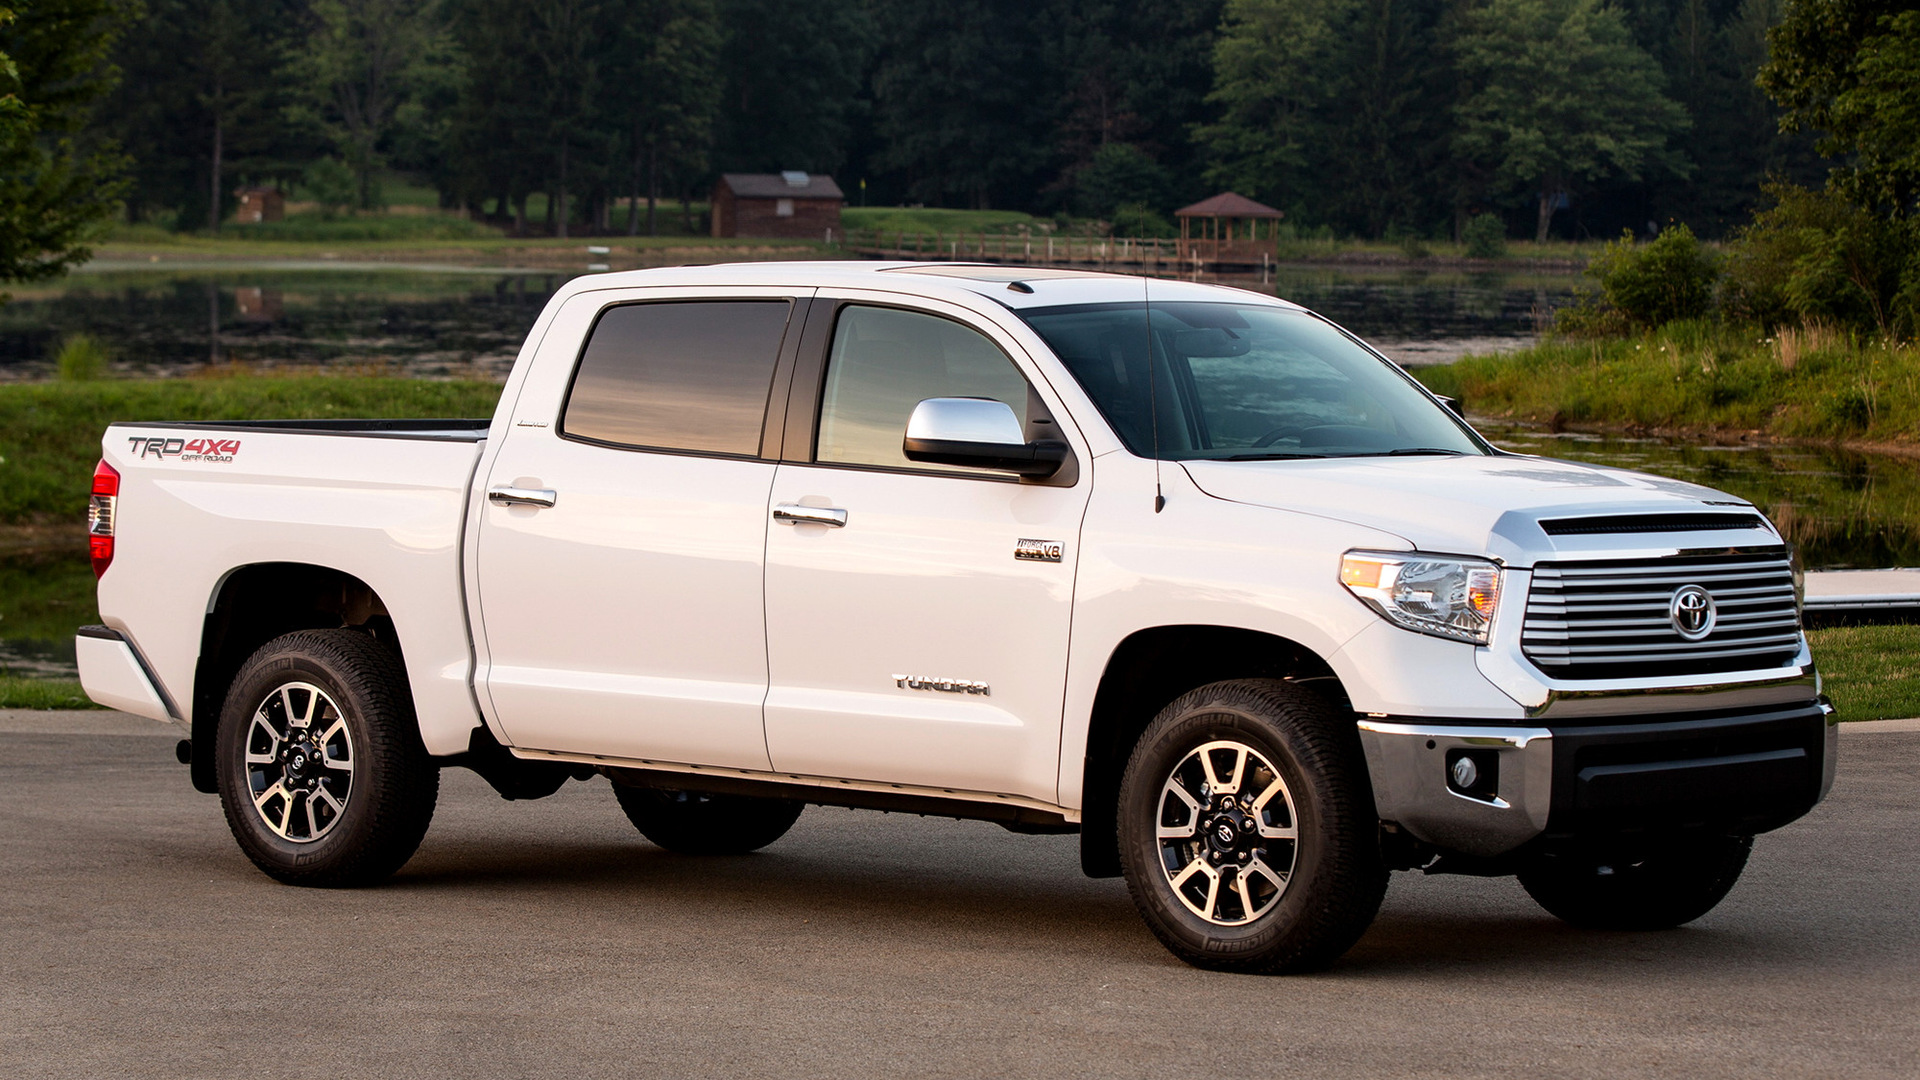 2013 TRD Toyota Tundra CrewMax Limited - Wallpapers and HD Images | Car Pixel